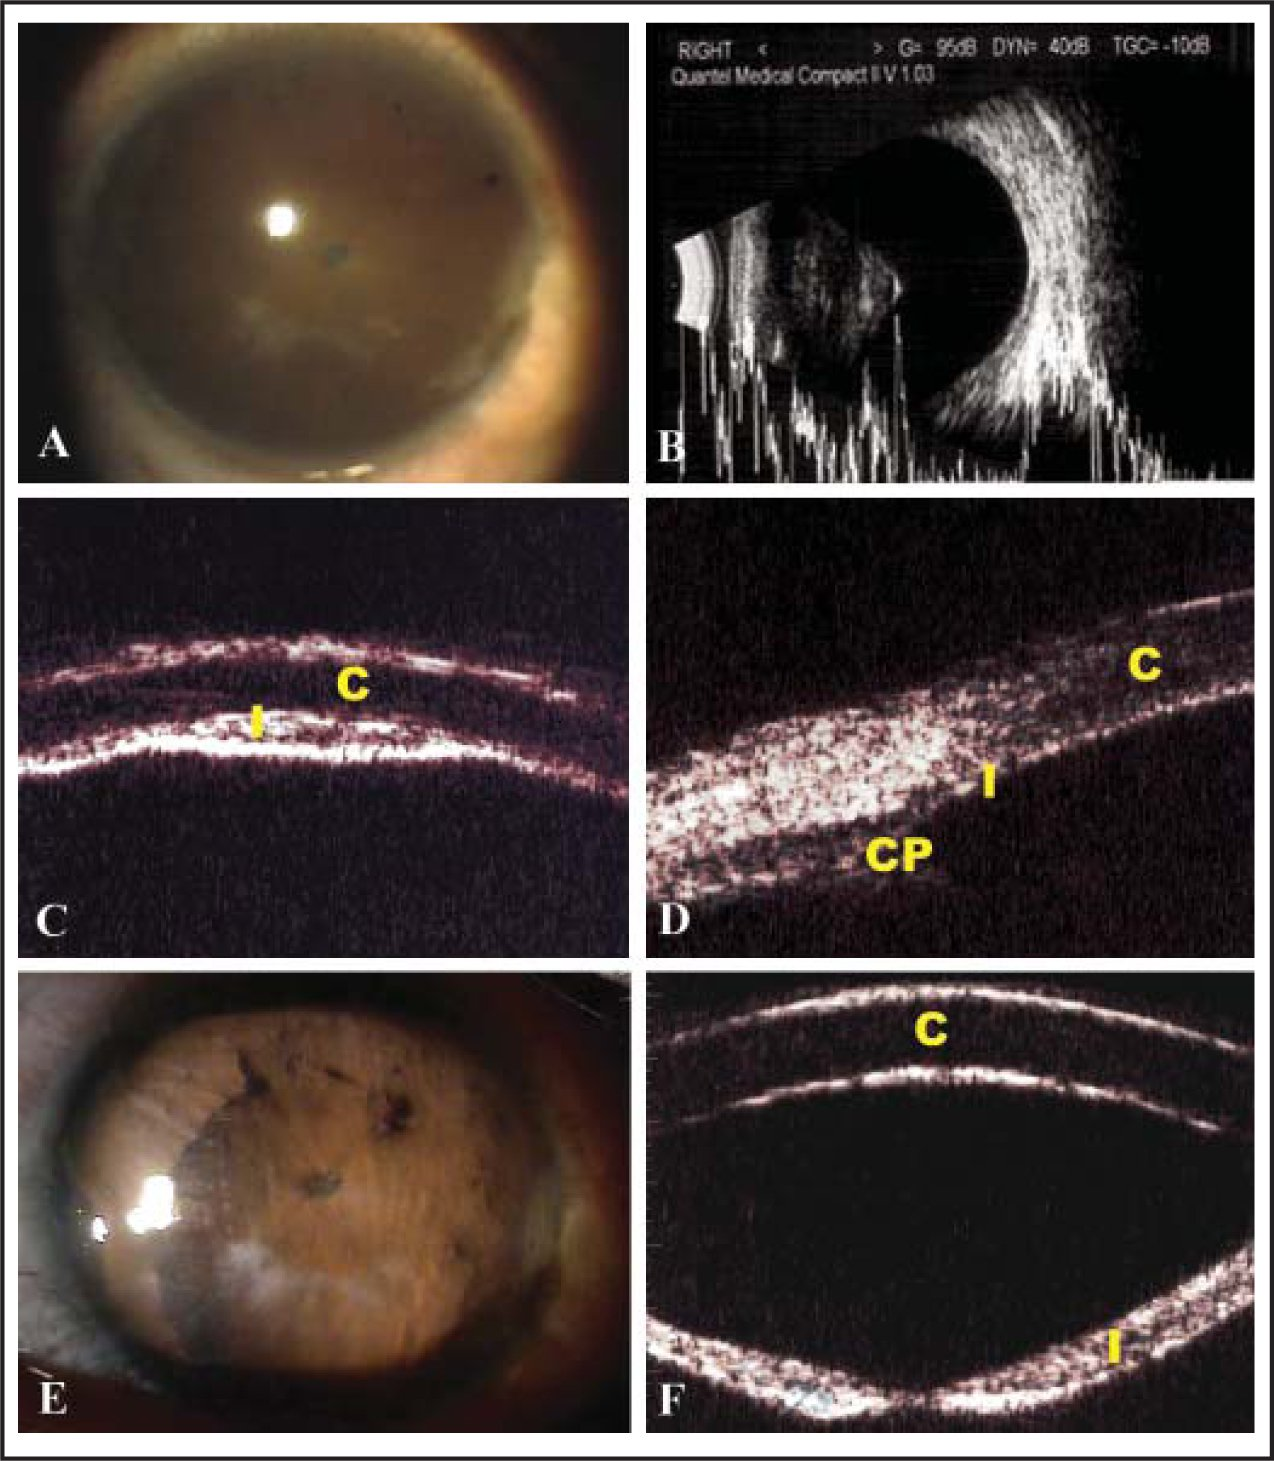 (A) Pretreatment photograph of anterior segment shows flat anterior chamber and synechial closure of the pupil margin. (B) B-scan ultrasonography shows pooling of aqueous humor behind a posterior vitreous detachment and there is no choroidal detachment or hemorrhage. (C and D) Pretreatment ultrasound biomicroscopy shows a flat anterior chamber and forward movement of the ciliary processes. (E) Posttreatment photograph of anterior segment shows a centrally deep anterior chamber and peripheral anterior synechiae. (F) Posttreatment ultrasound biomicroscopy shows a centrally deep anterior chamber. C = cornea; I = iris; CP = ciliary process.